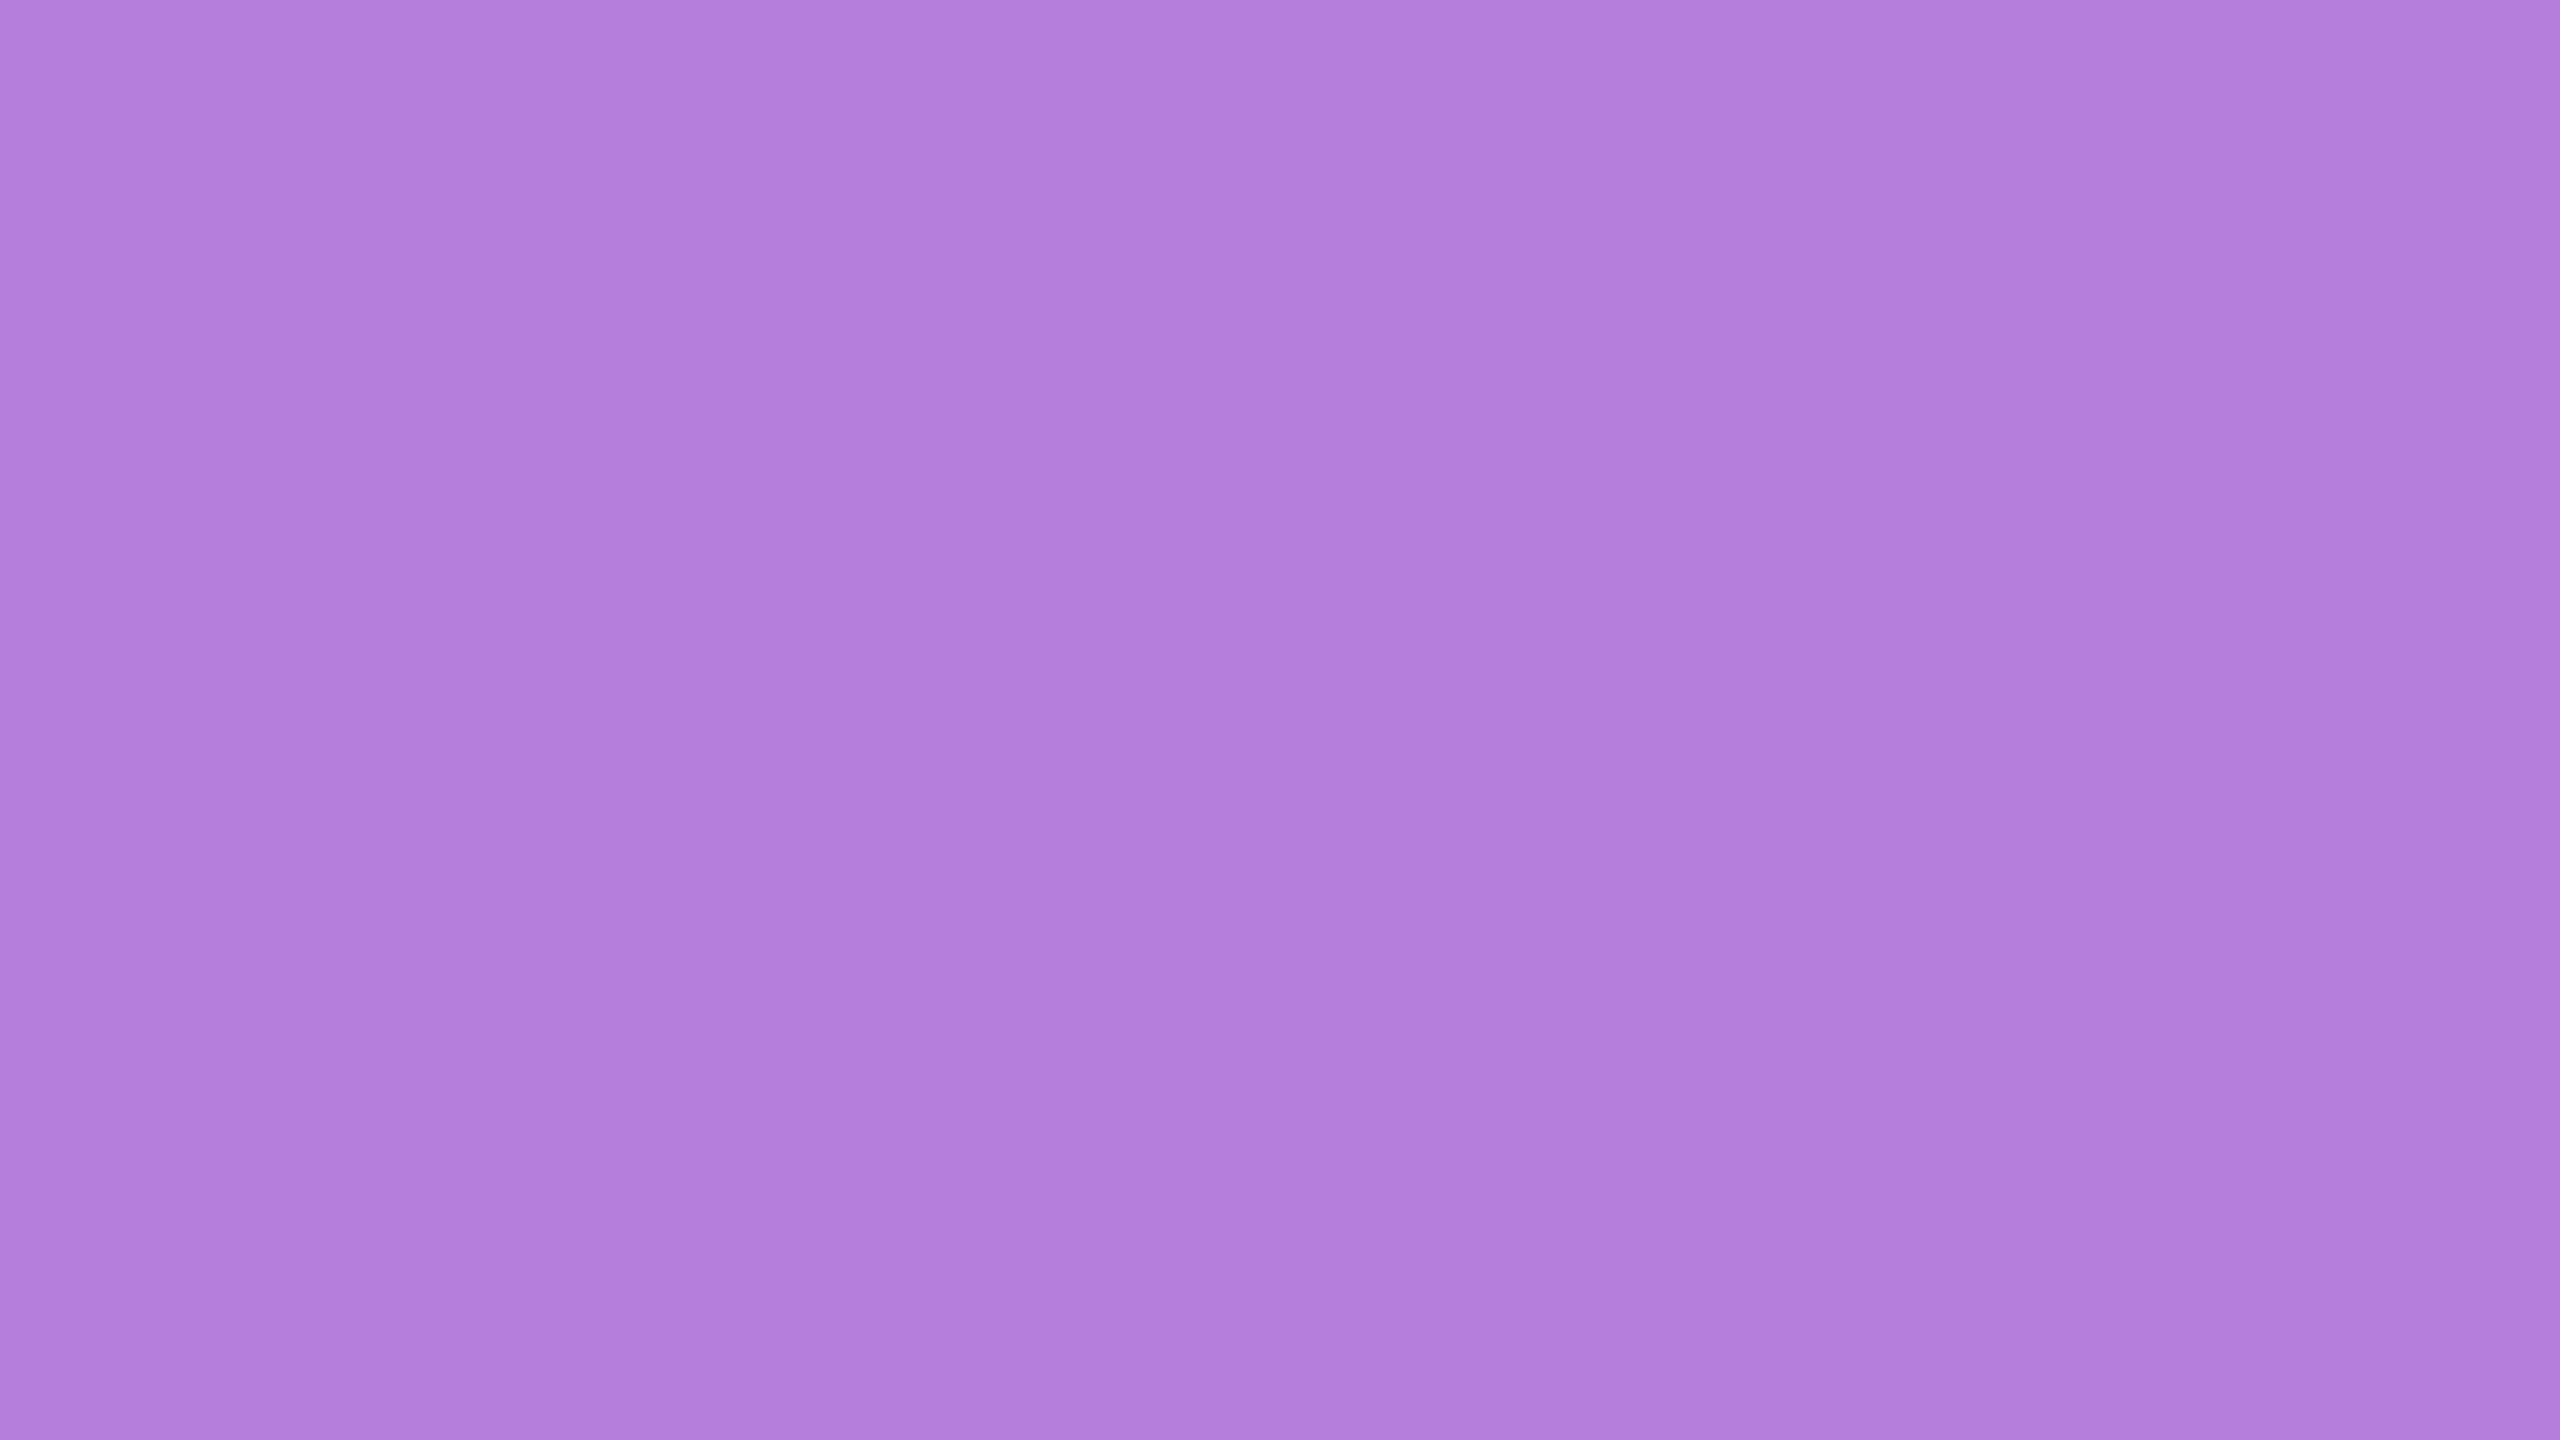 2560x1440 Lavender Floral Solid Color Background